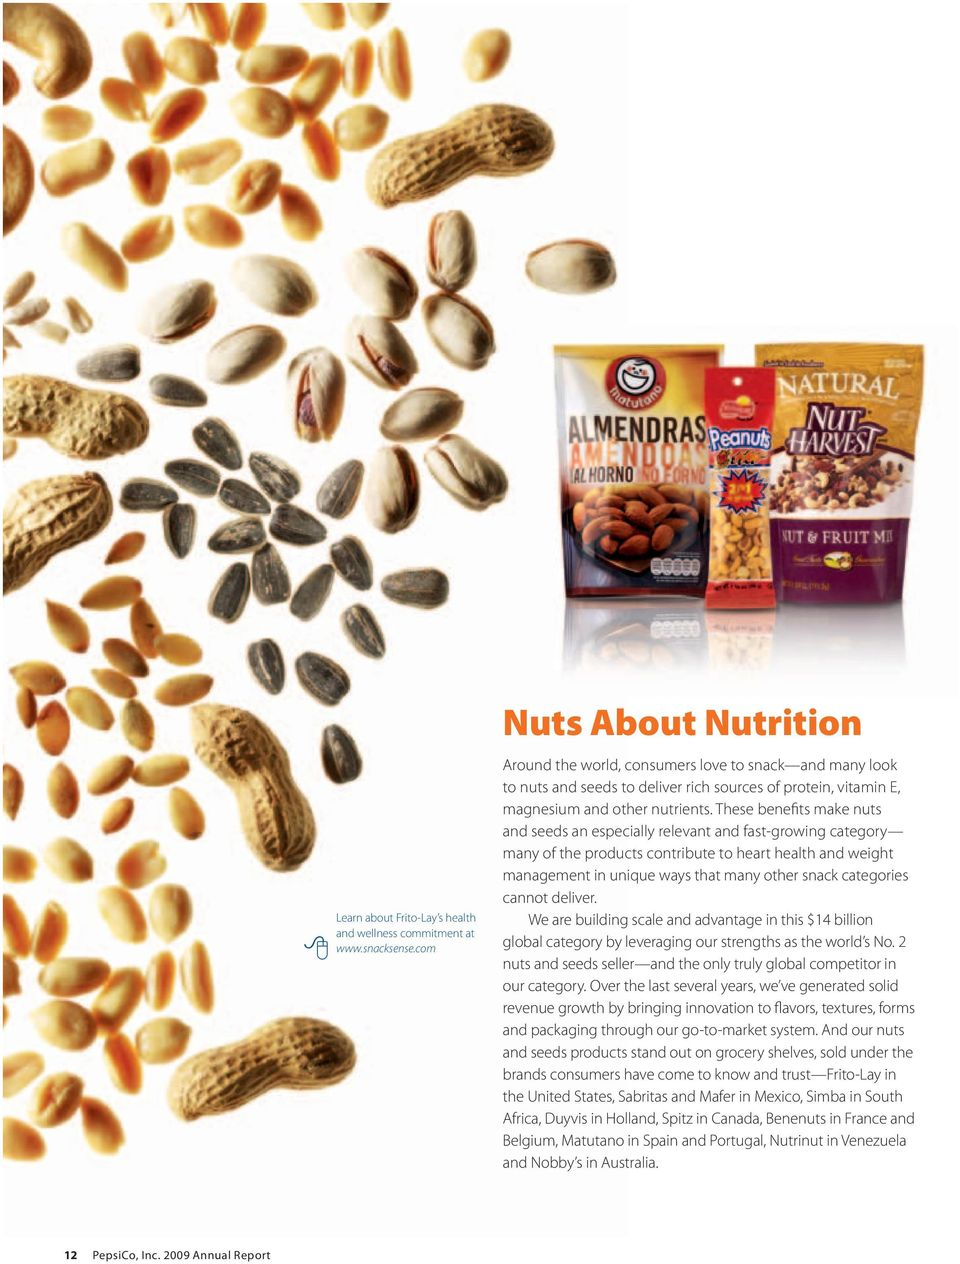 These benefits make nuts and seeds an especially relevant and fast-growing category many of the products contribute to heart health and weight management in unique ways that many other snack